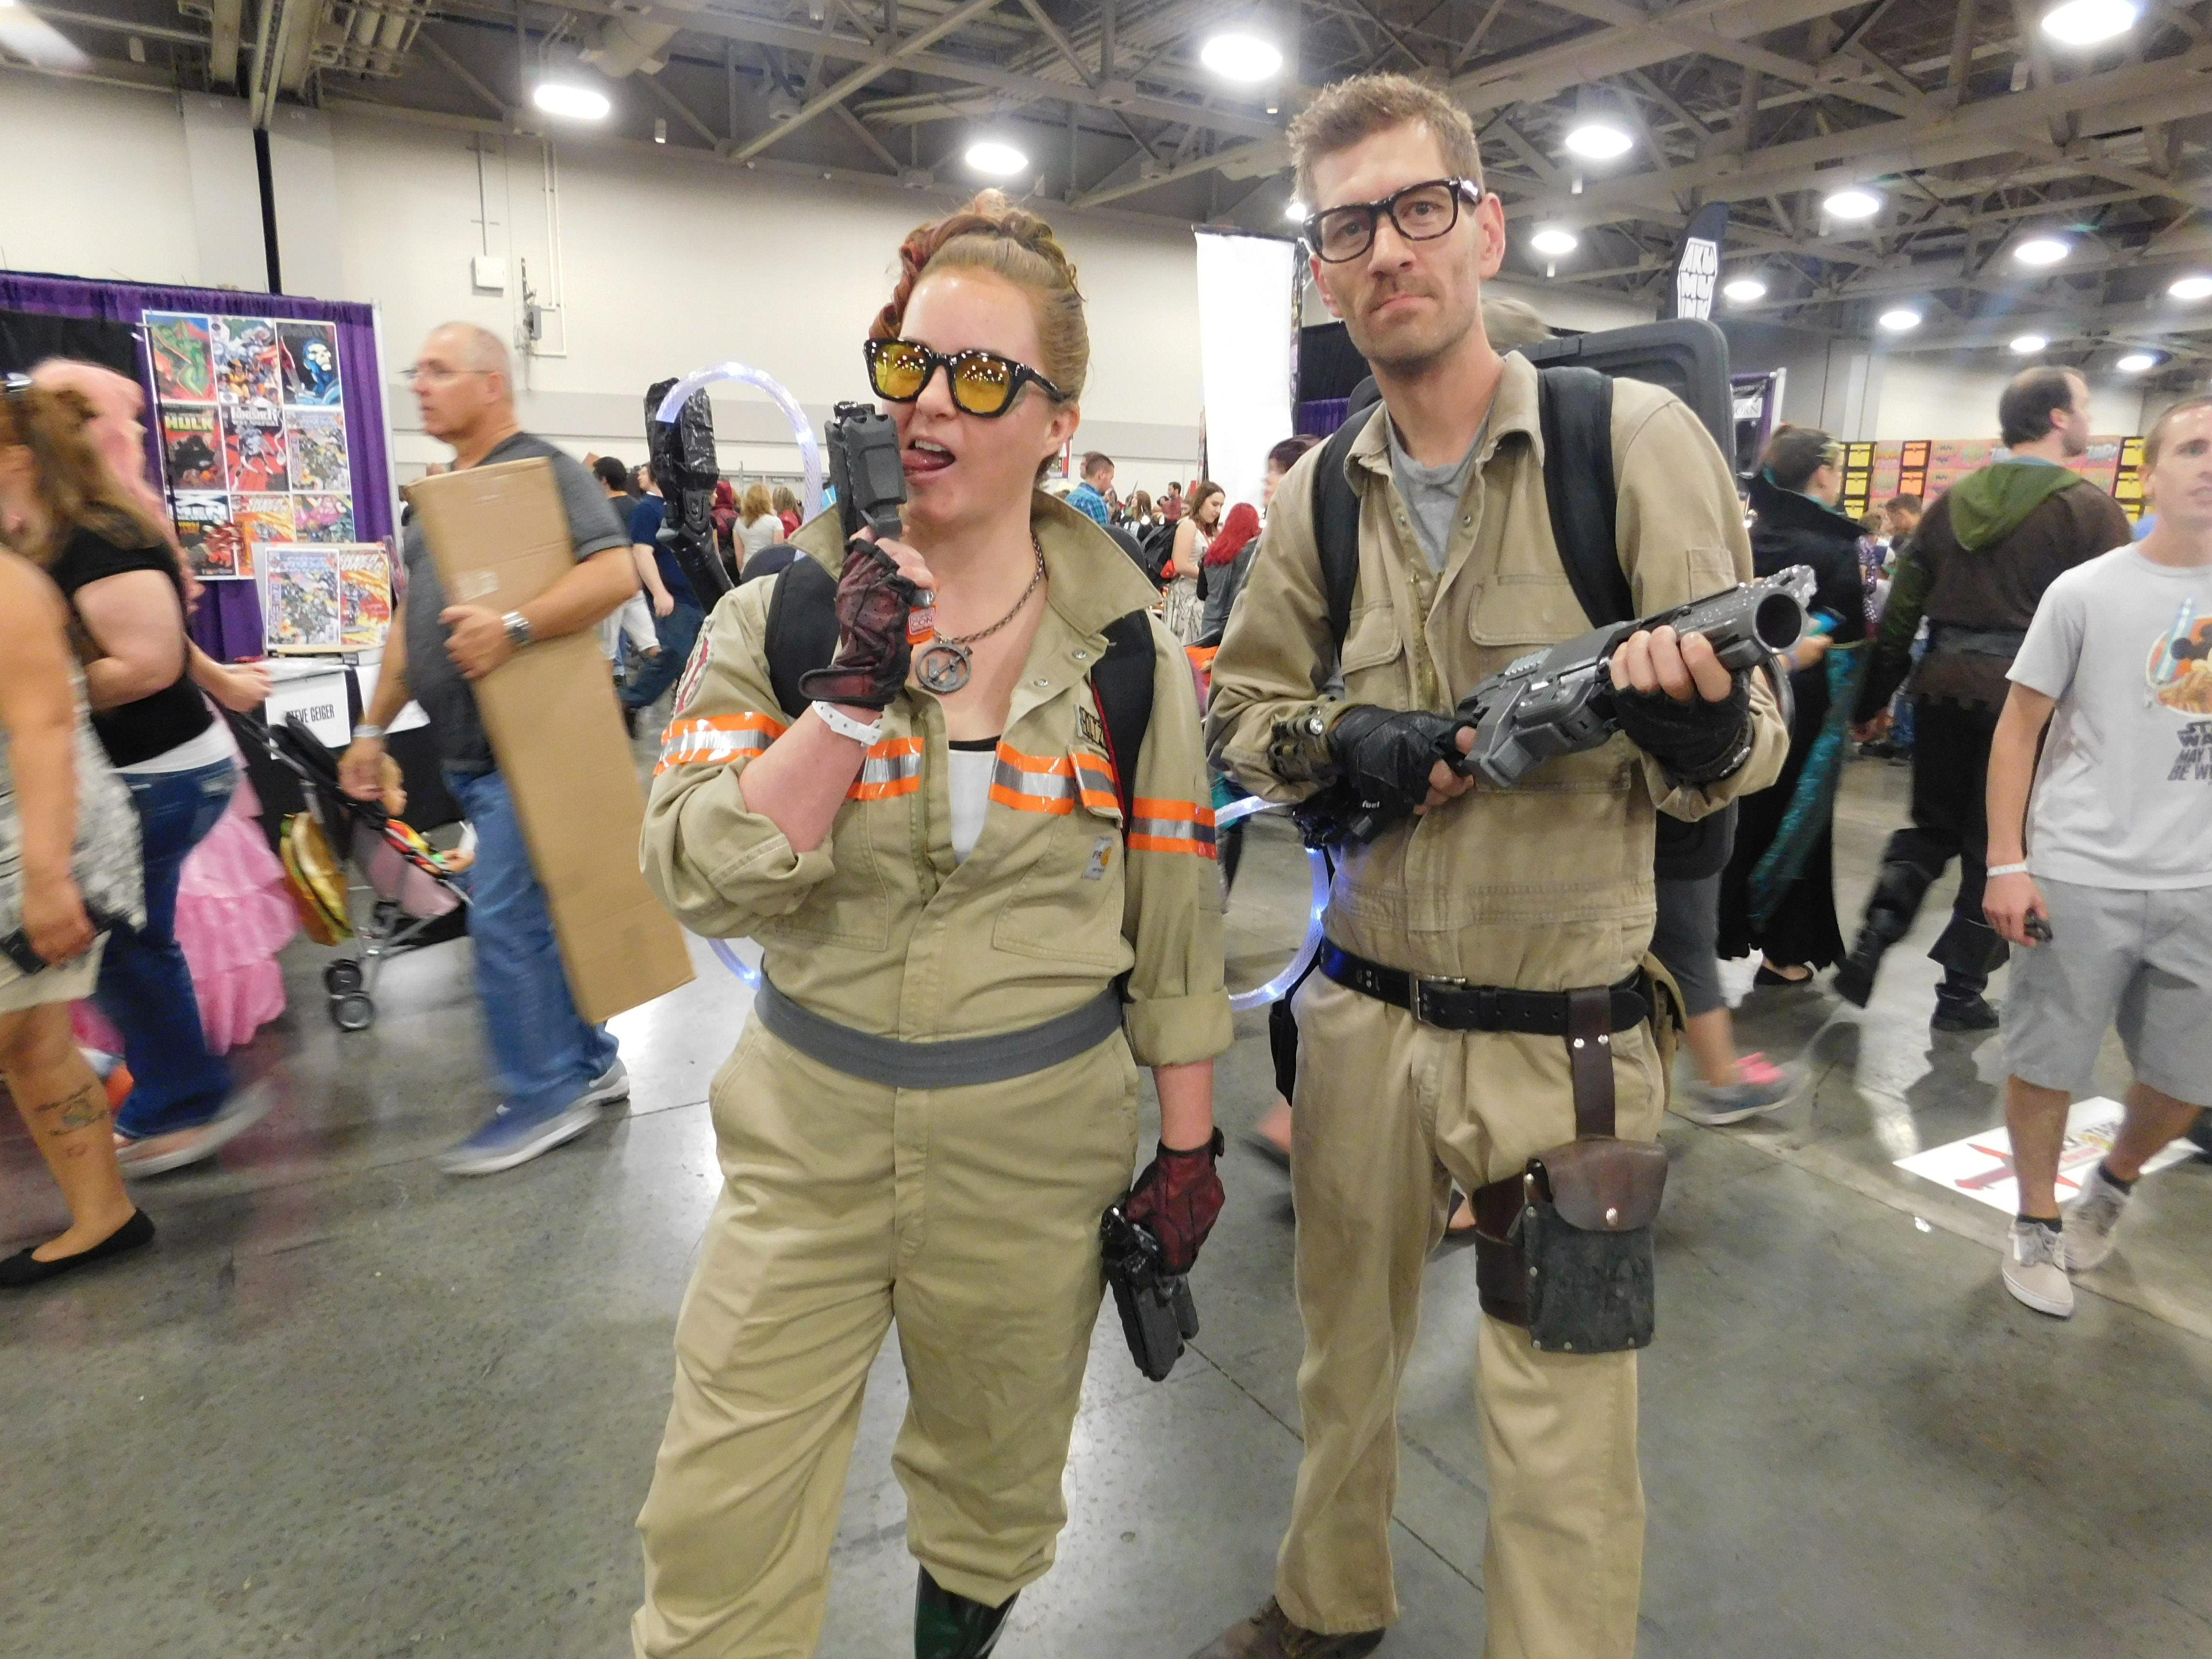 SLCCd3.023 - A couple of Ghostbusters on the prowl.